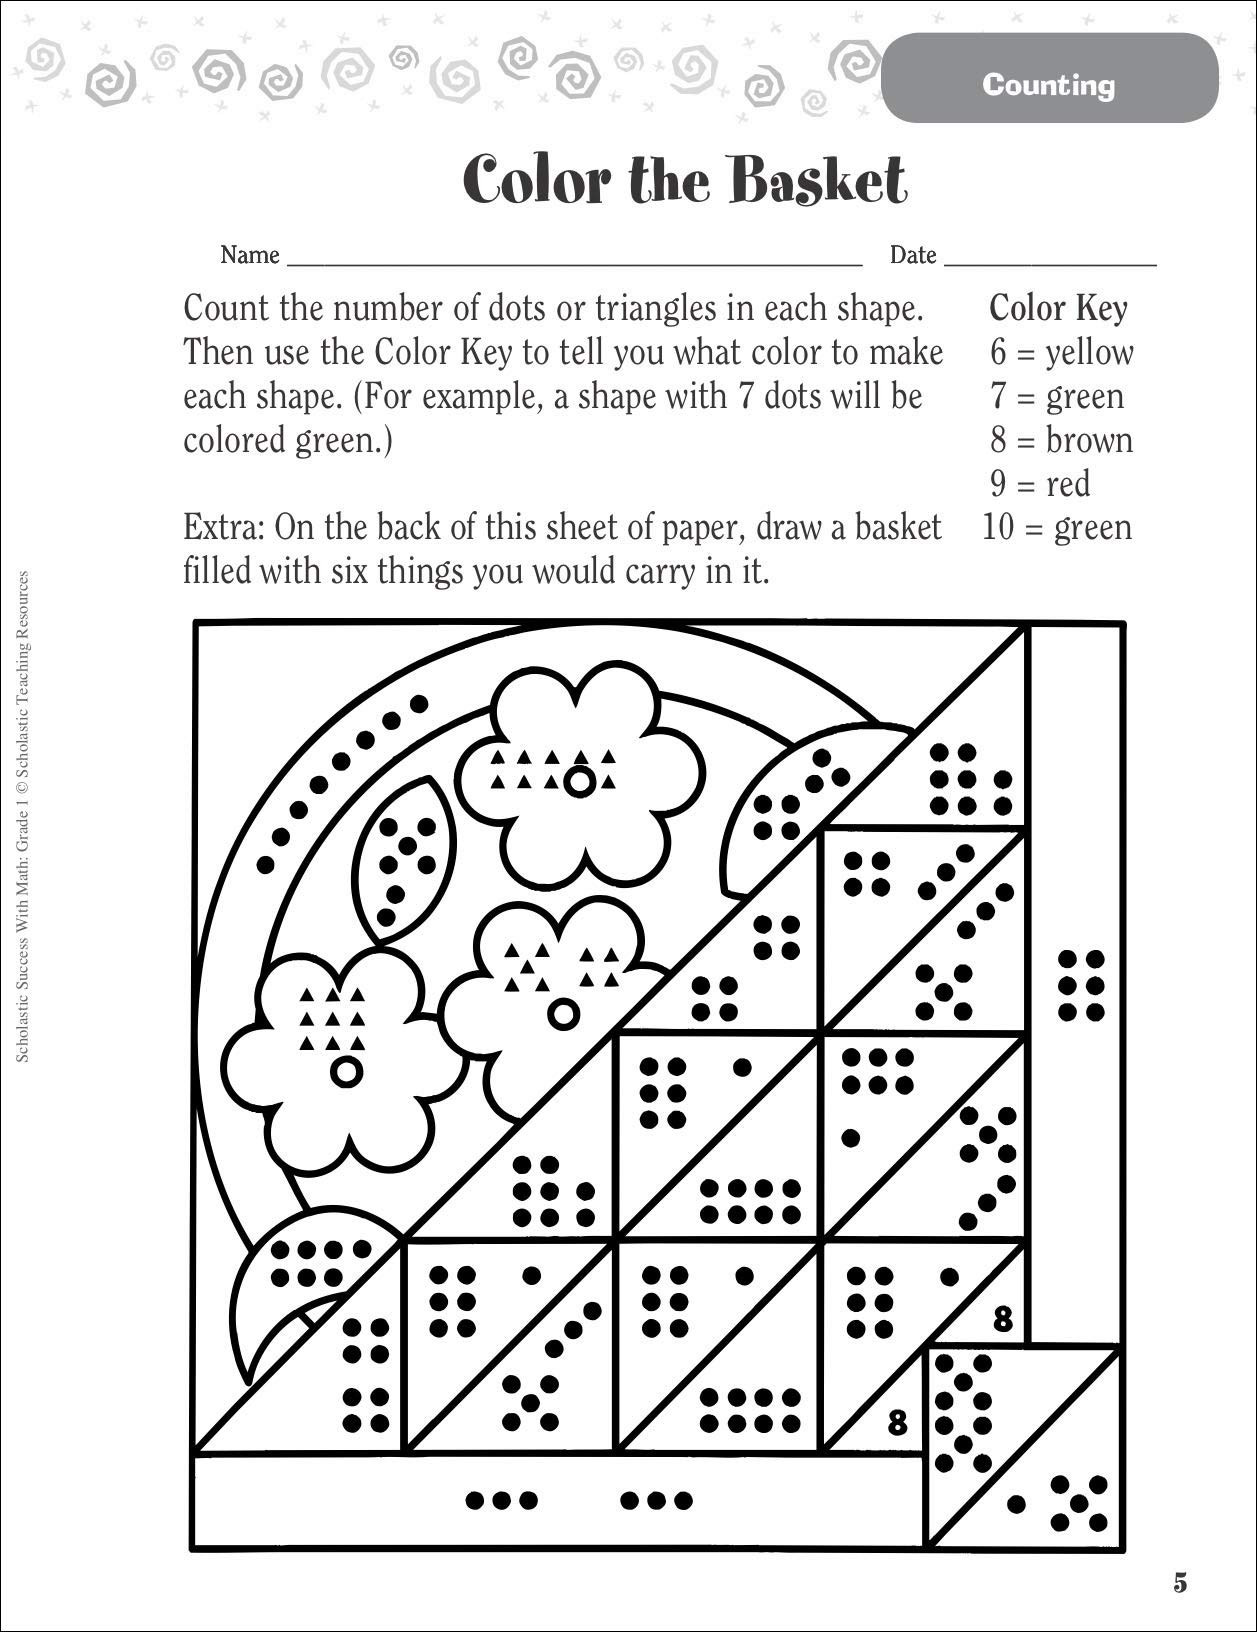 hight resolution of 5 Free Math Worksheets First Grade 1 Subtraction Subtracting 1 Digit From 2  Digit No Regrouping - apocalomegaproductions.com